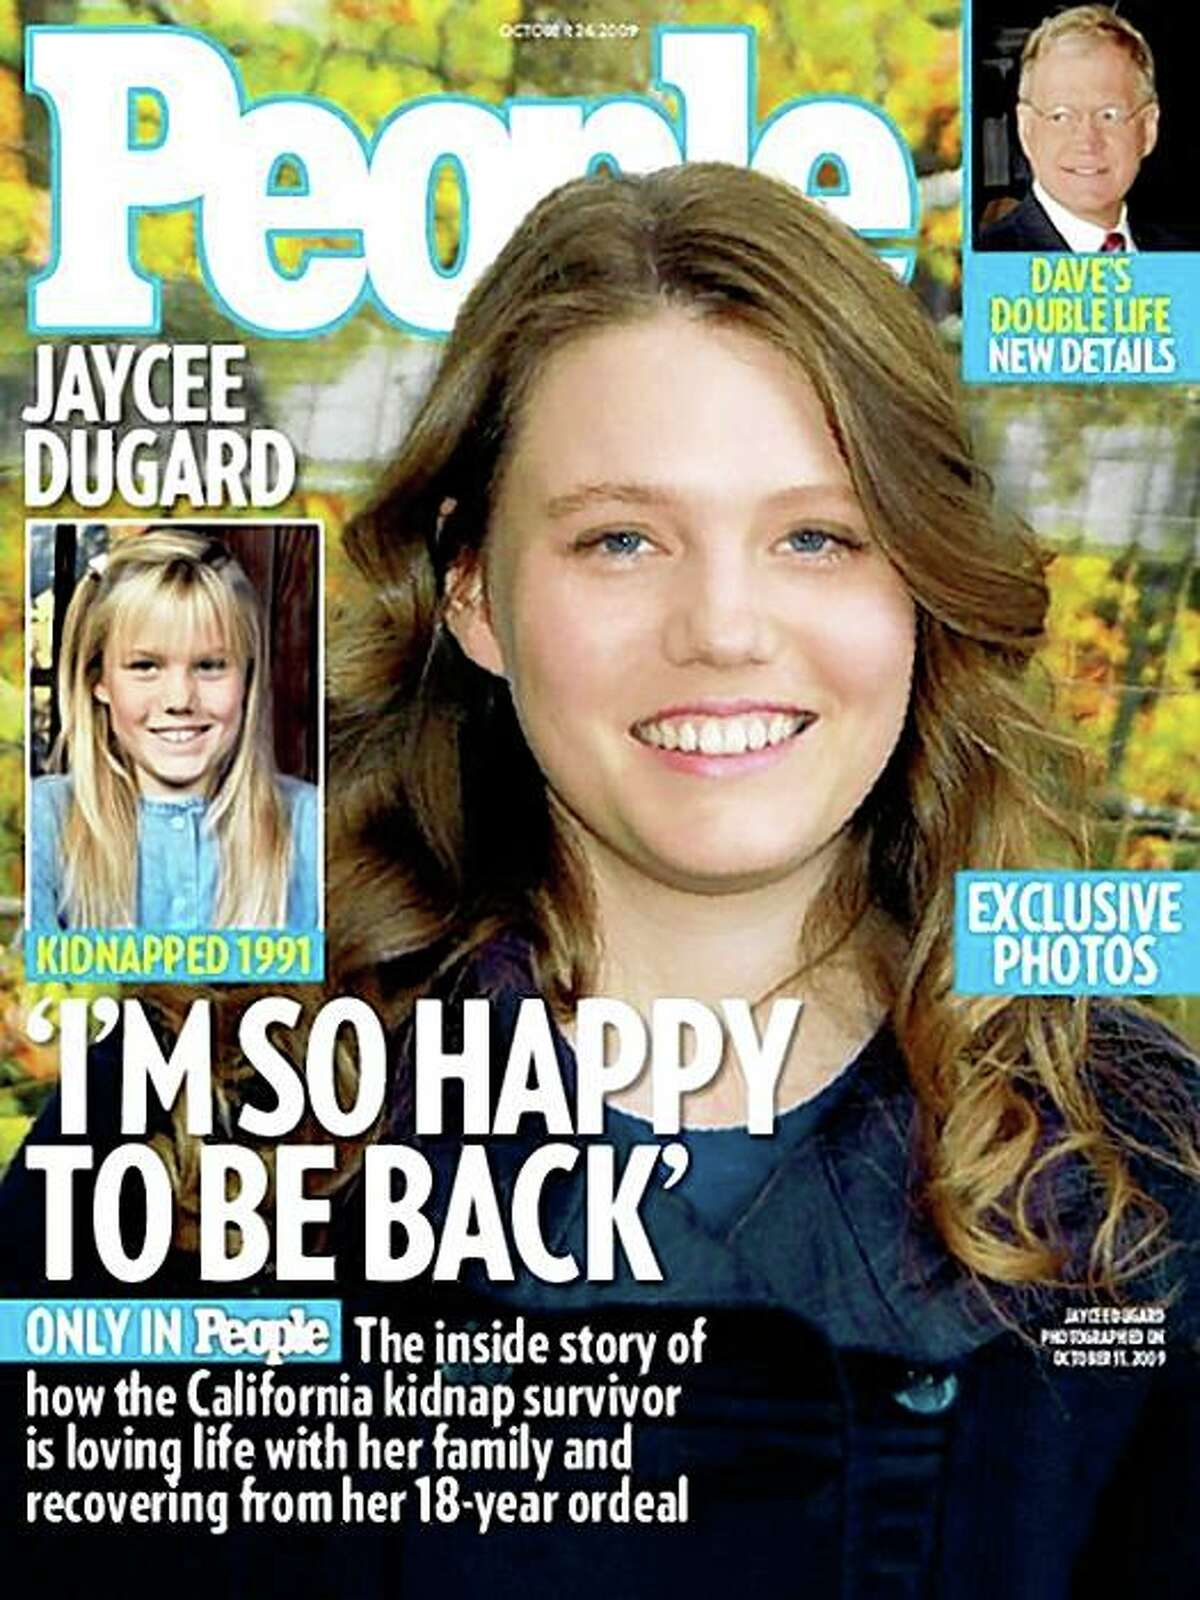 In this image released Wednesday, Oct. 14, 2009, by People Magazine, the cover of the magazine is shown with Jaycee Dugard. Dugard was 11 when police say she was abducted outside her South Lake Tahoe home in 1991, she is now 29. Dugard decided to release photos to People magazine as a way to